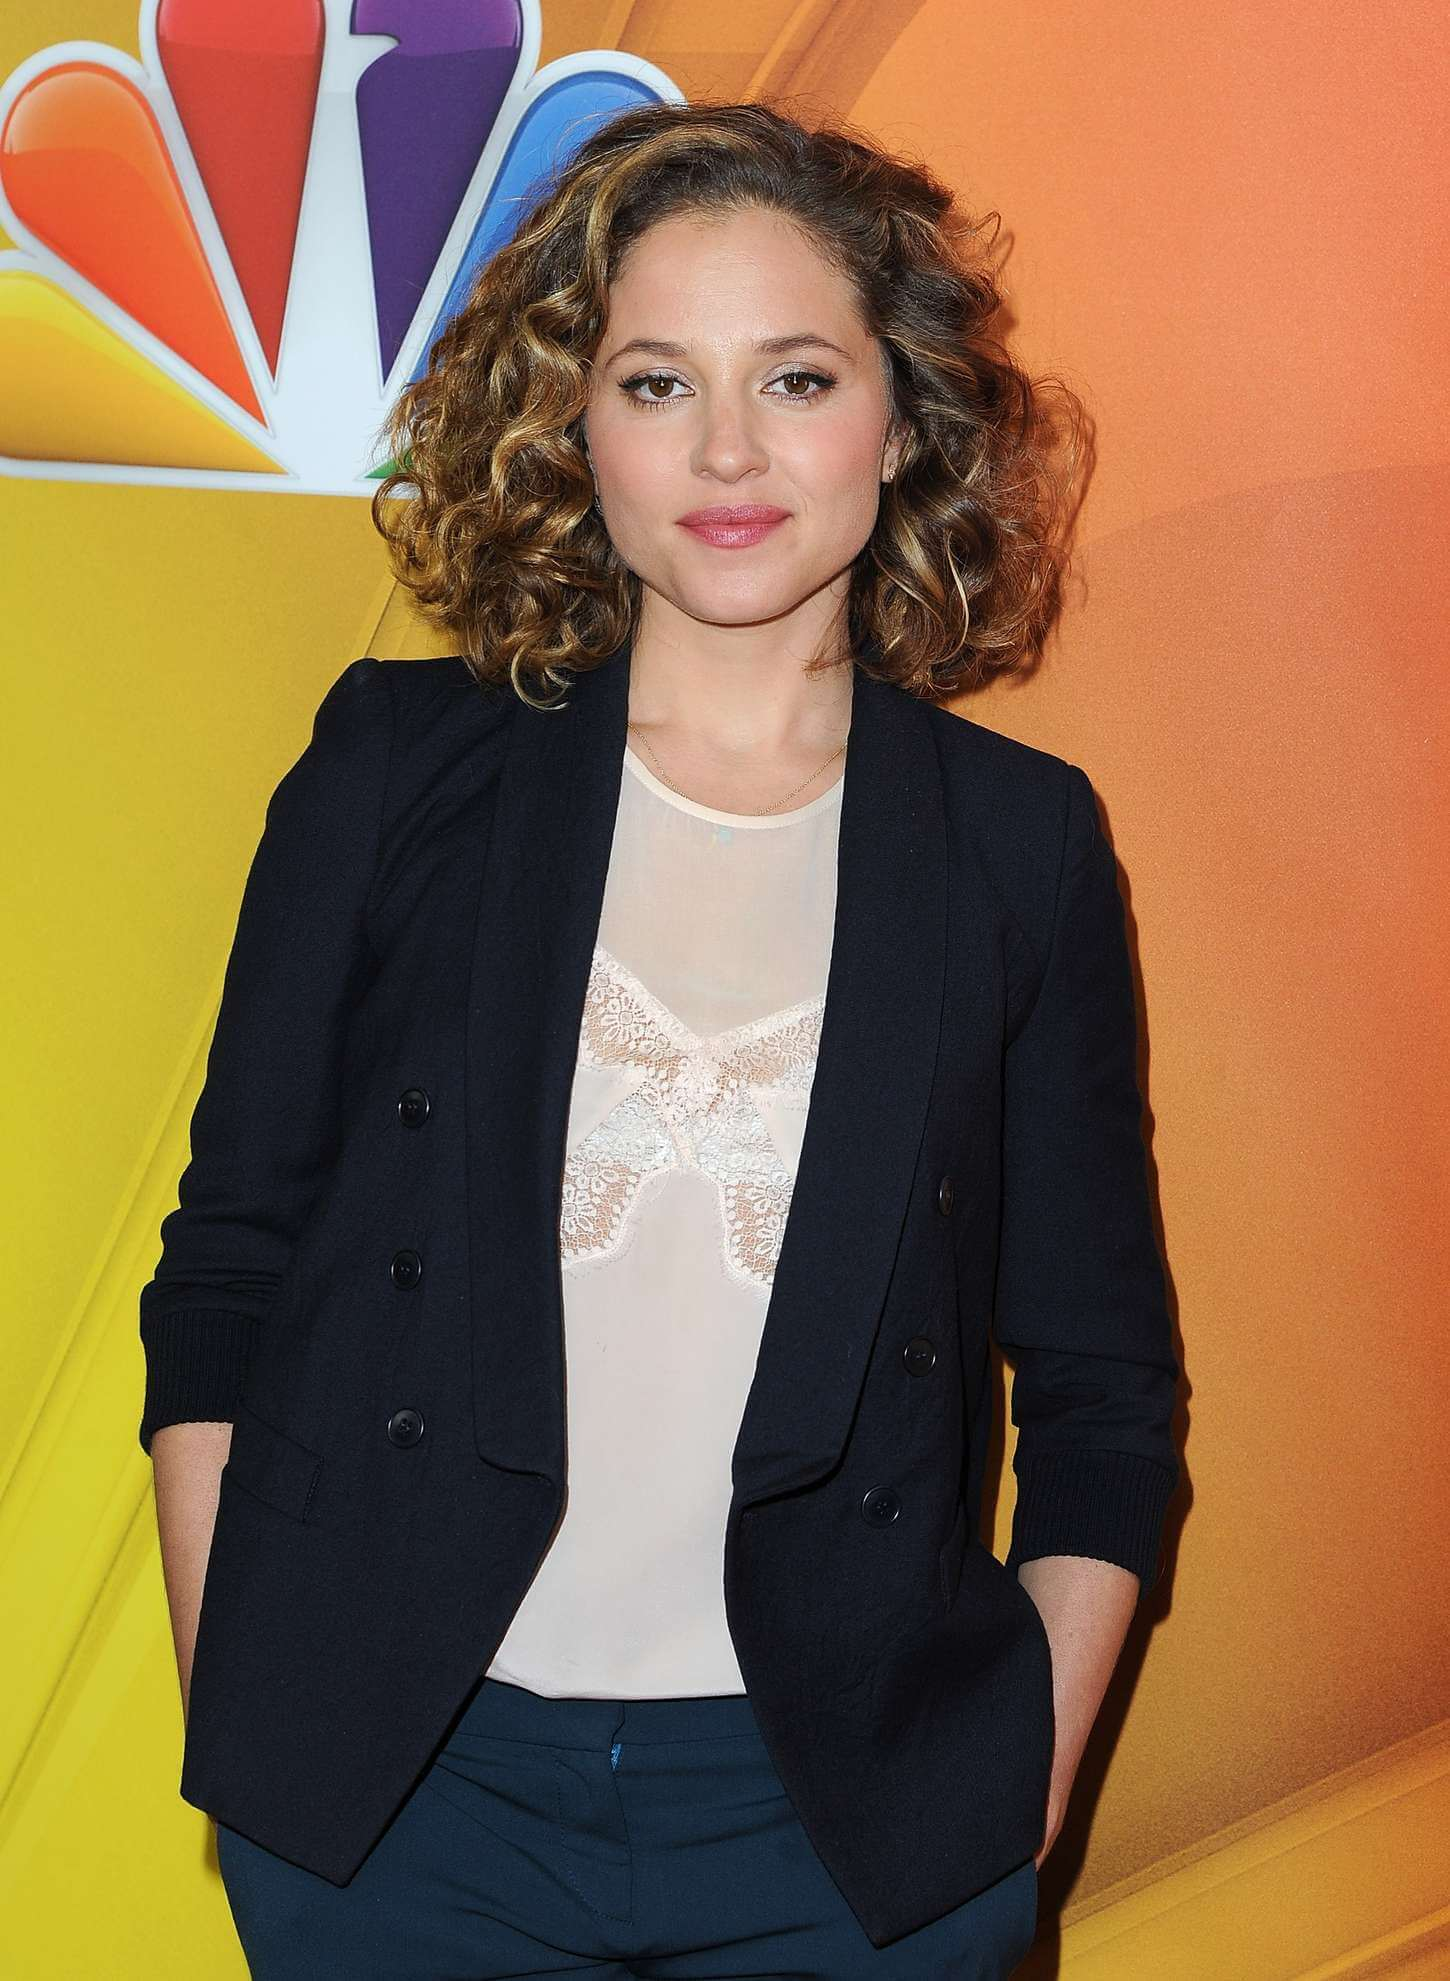 Margarita Levieva awesome pic